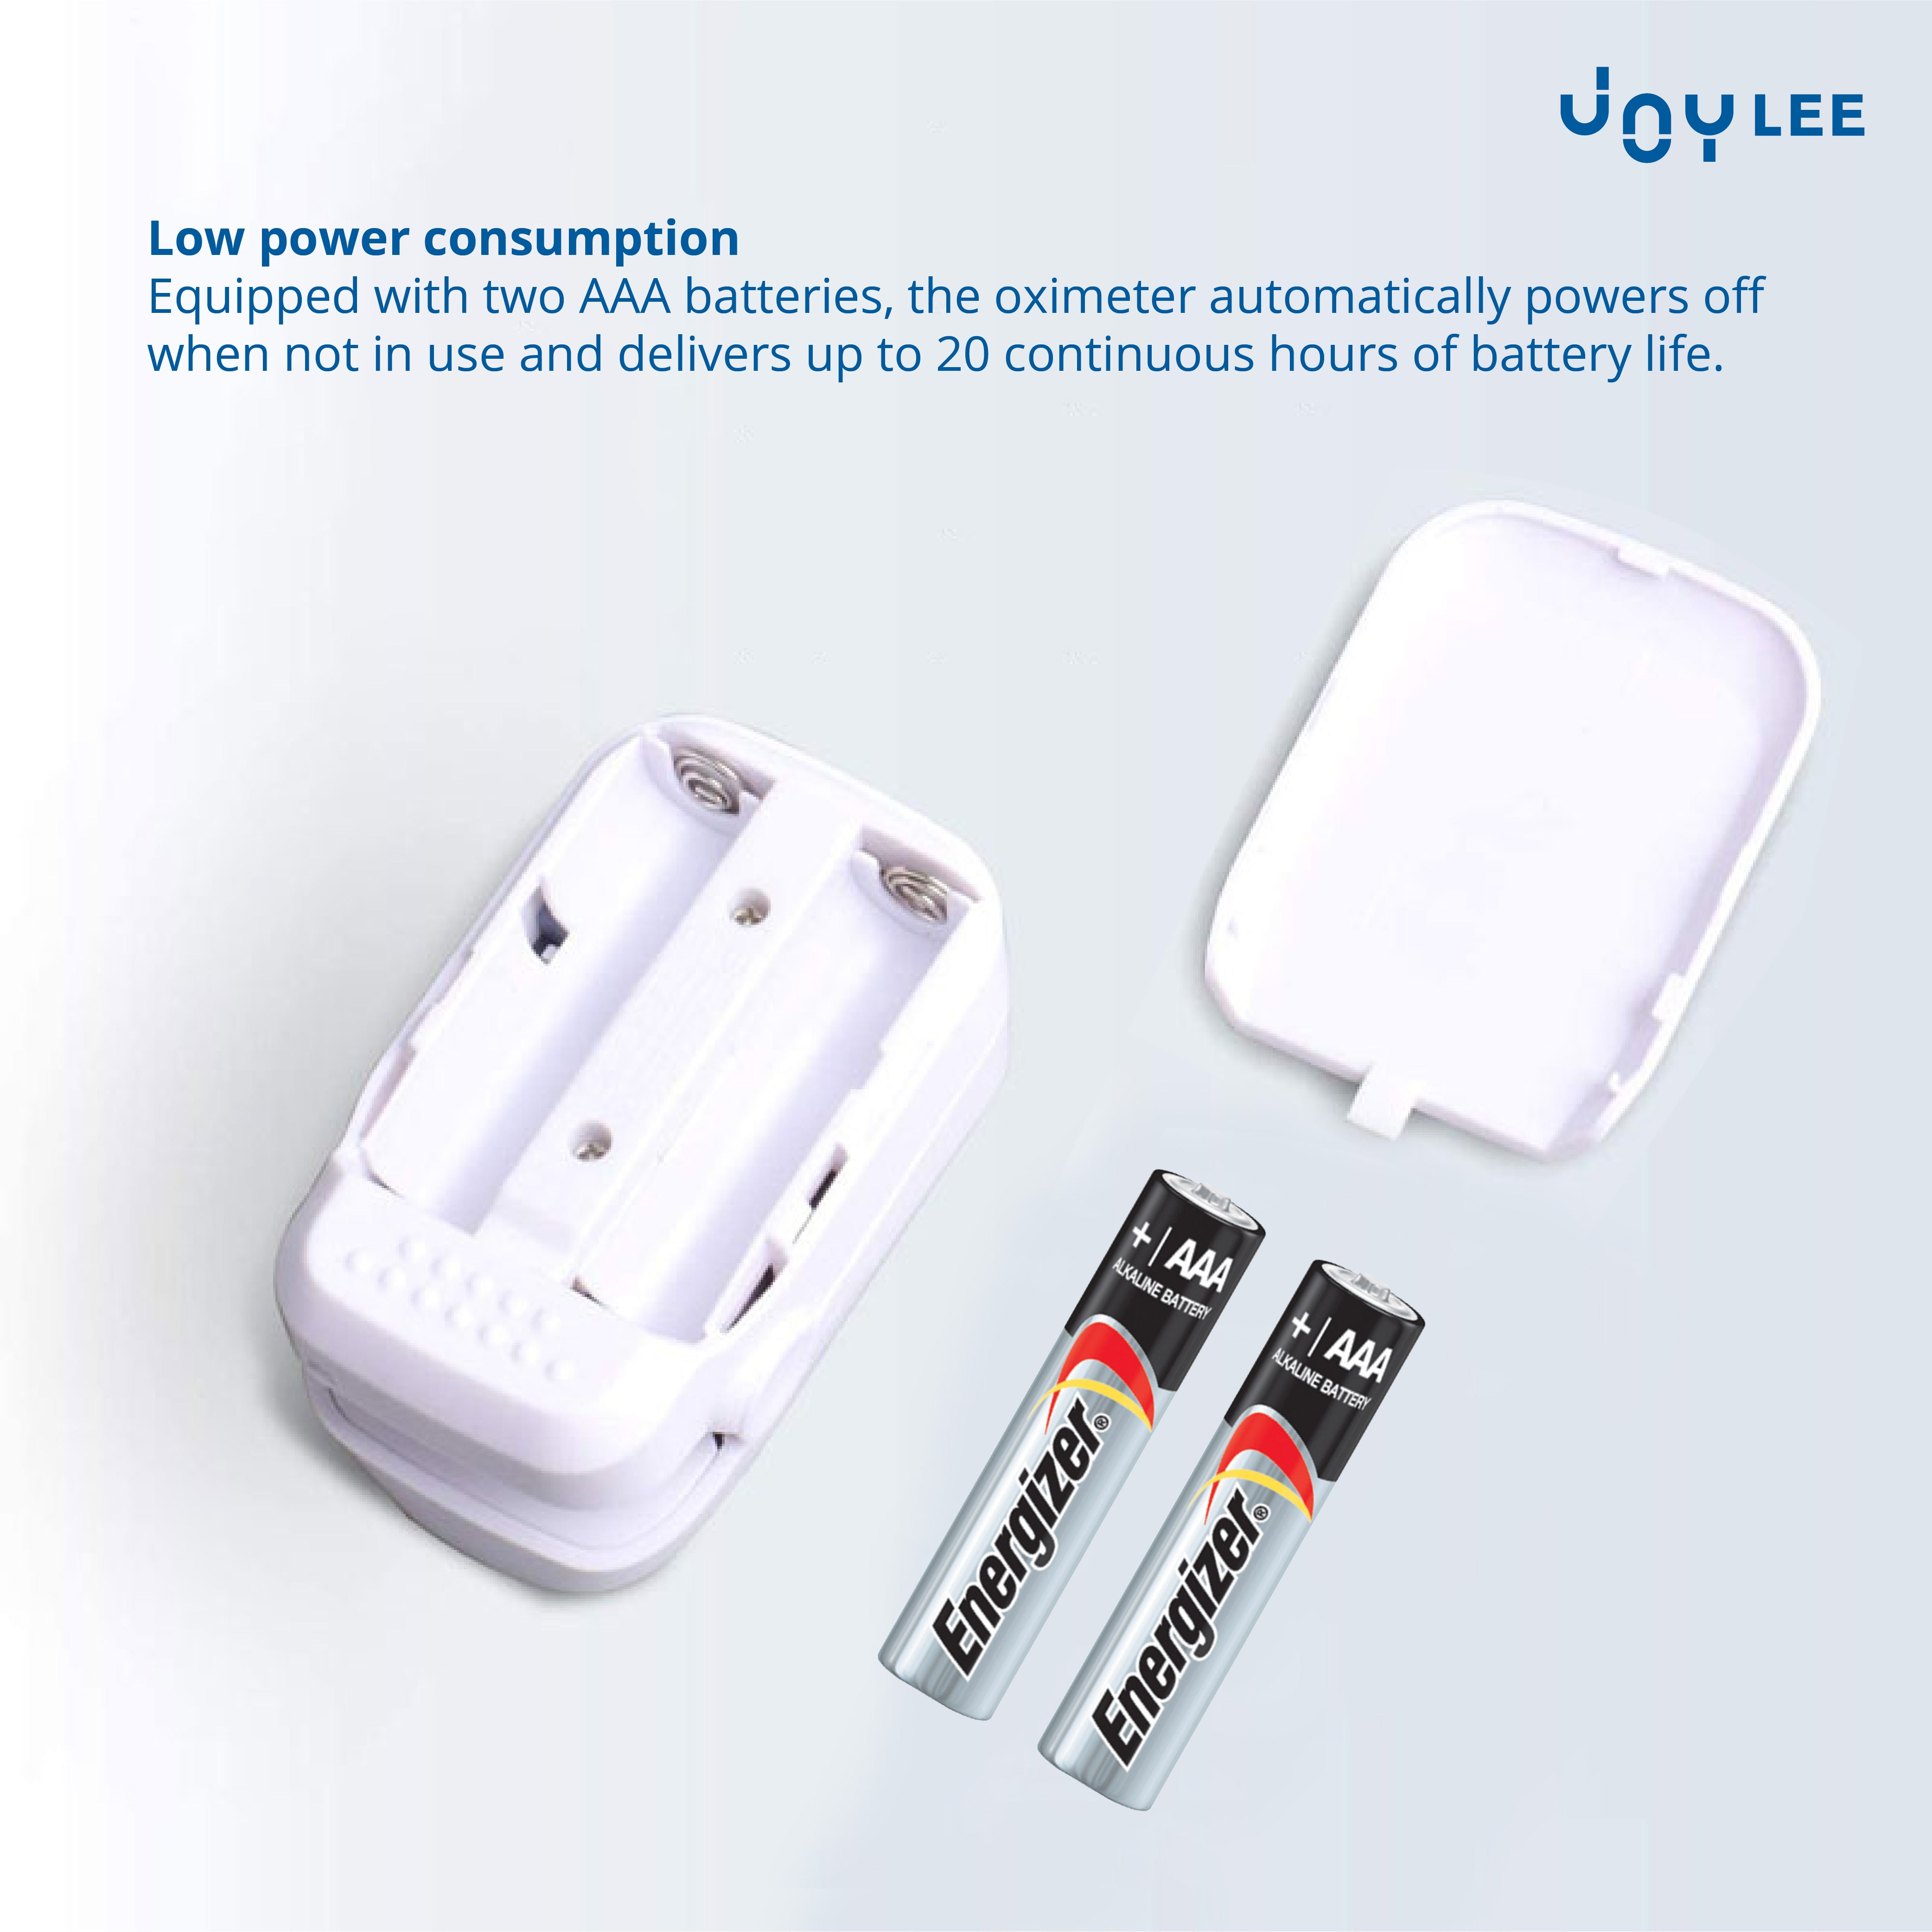 2 AAA battery compartment